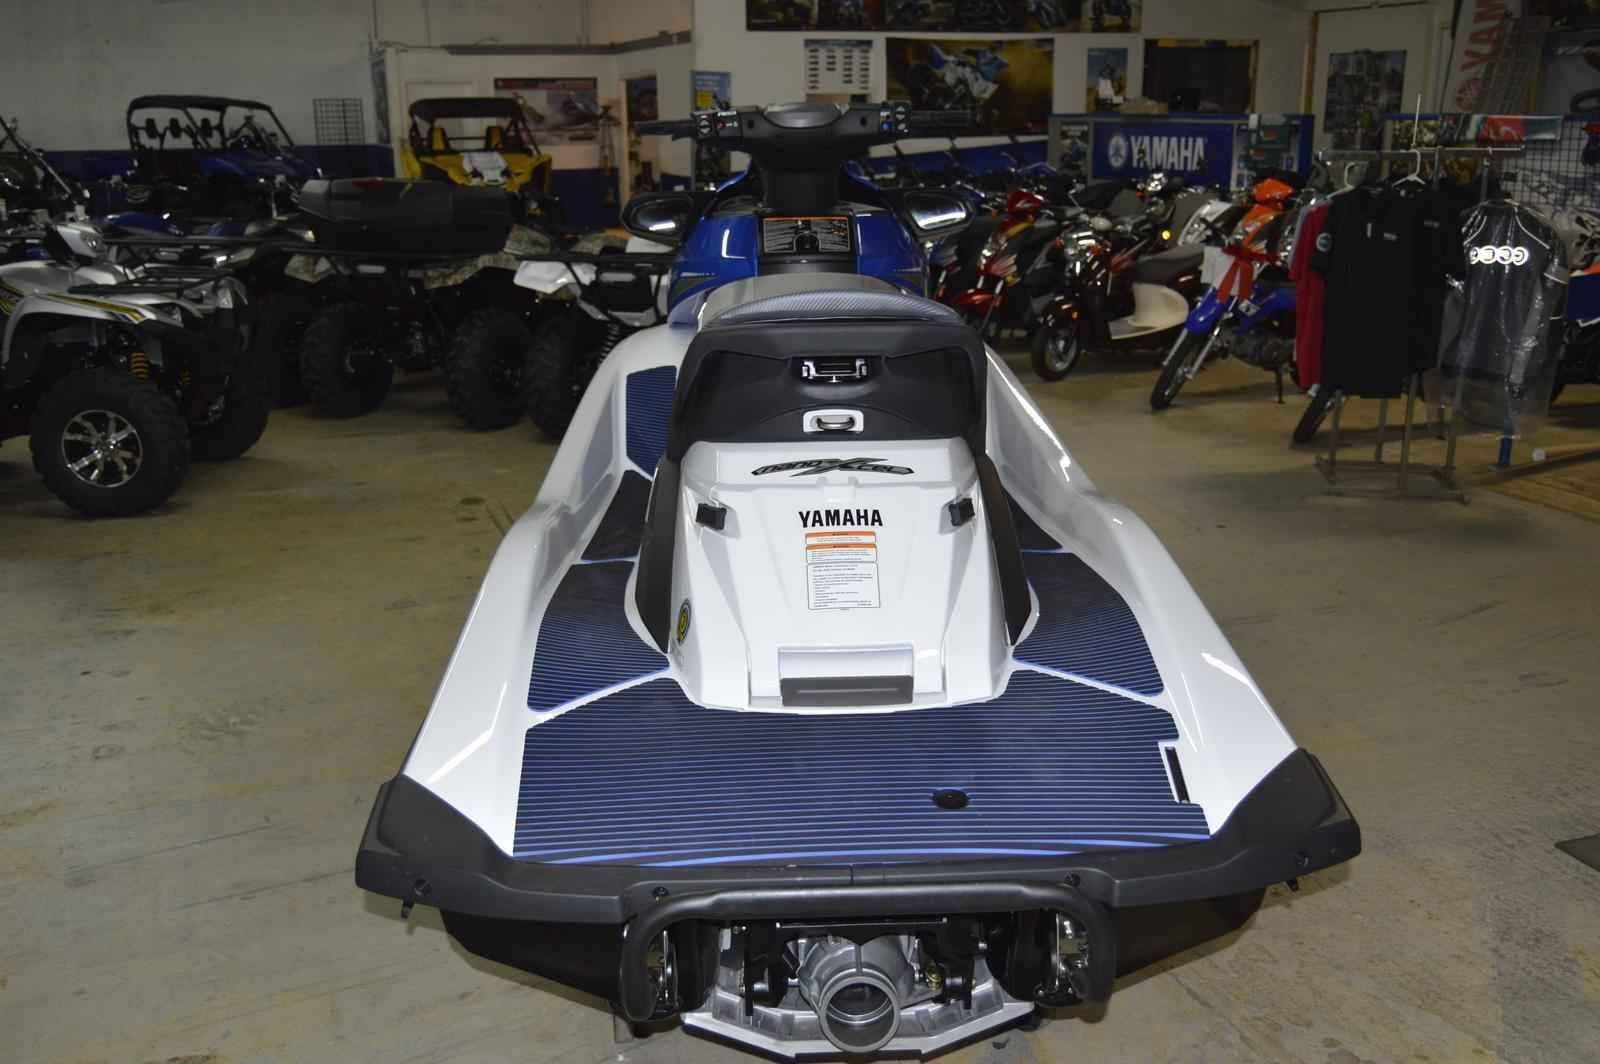 New 2016 Yamaha Fx Ho Jet Skis For Sale In Florida Fl 2016 Yamaha Fx Ho Skis For Sale Jet Ski Yamaha